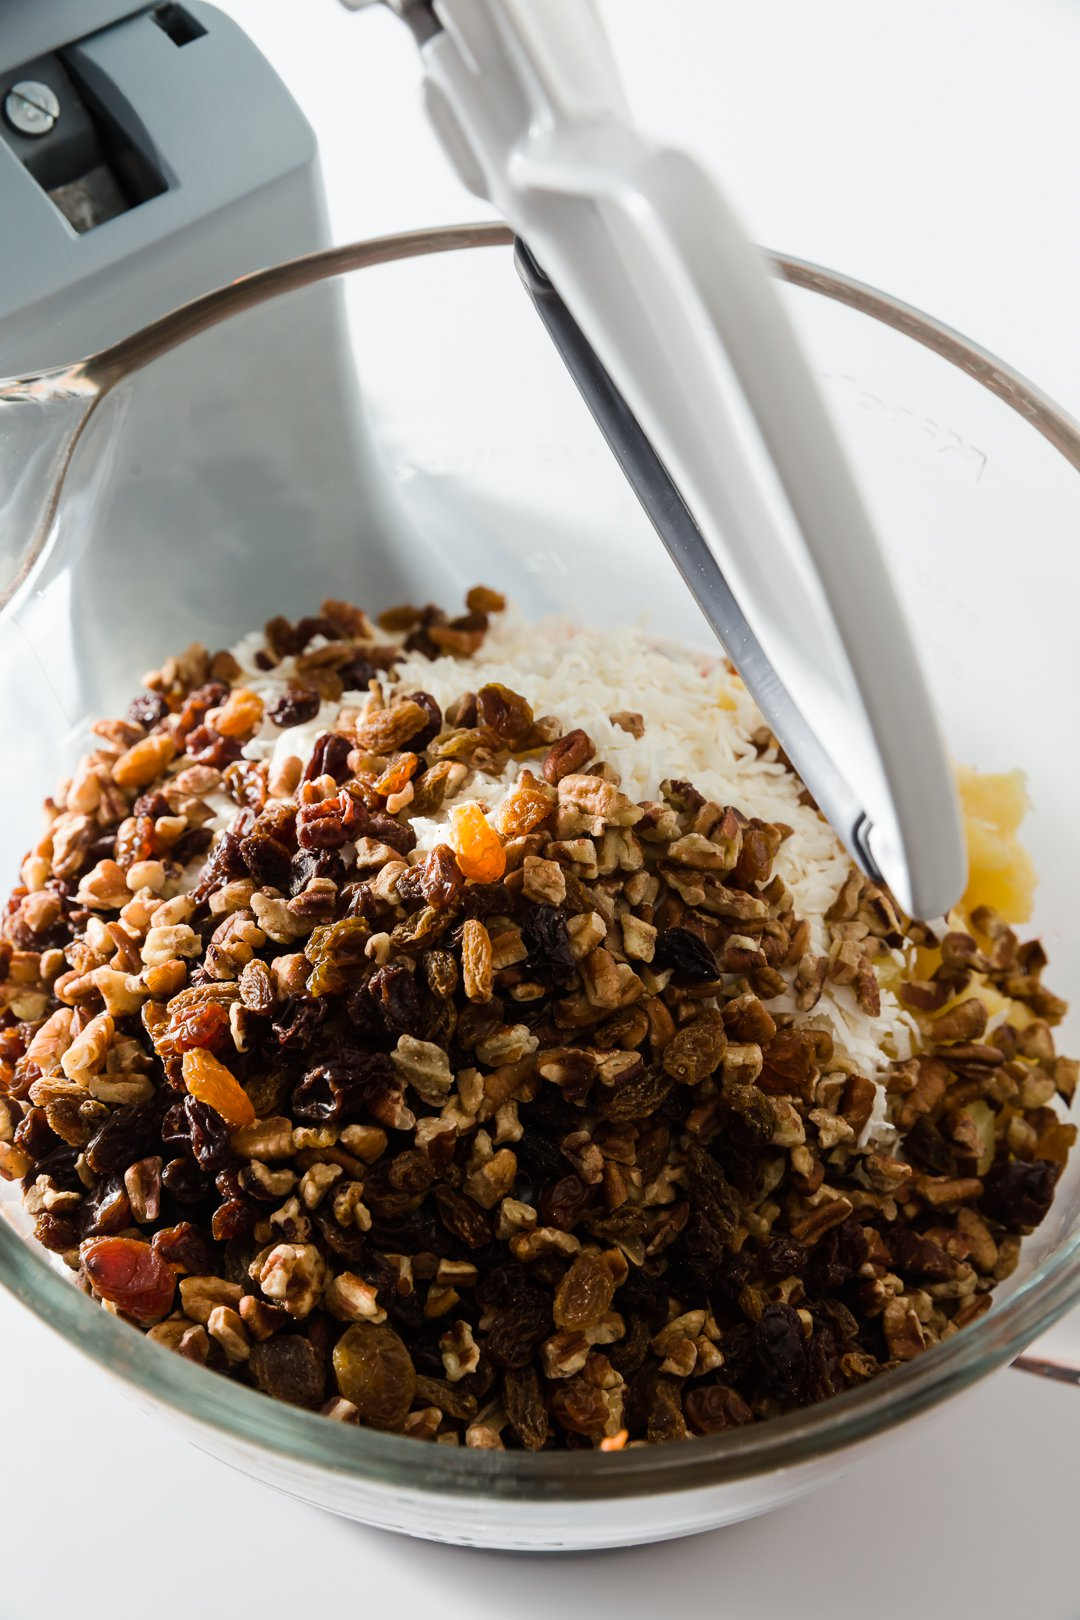 Nuts and raisins in carrot cake batter